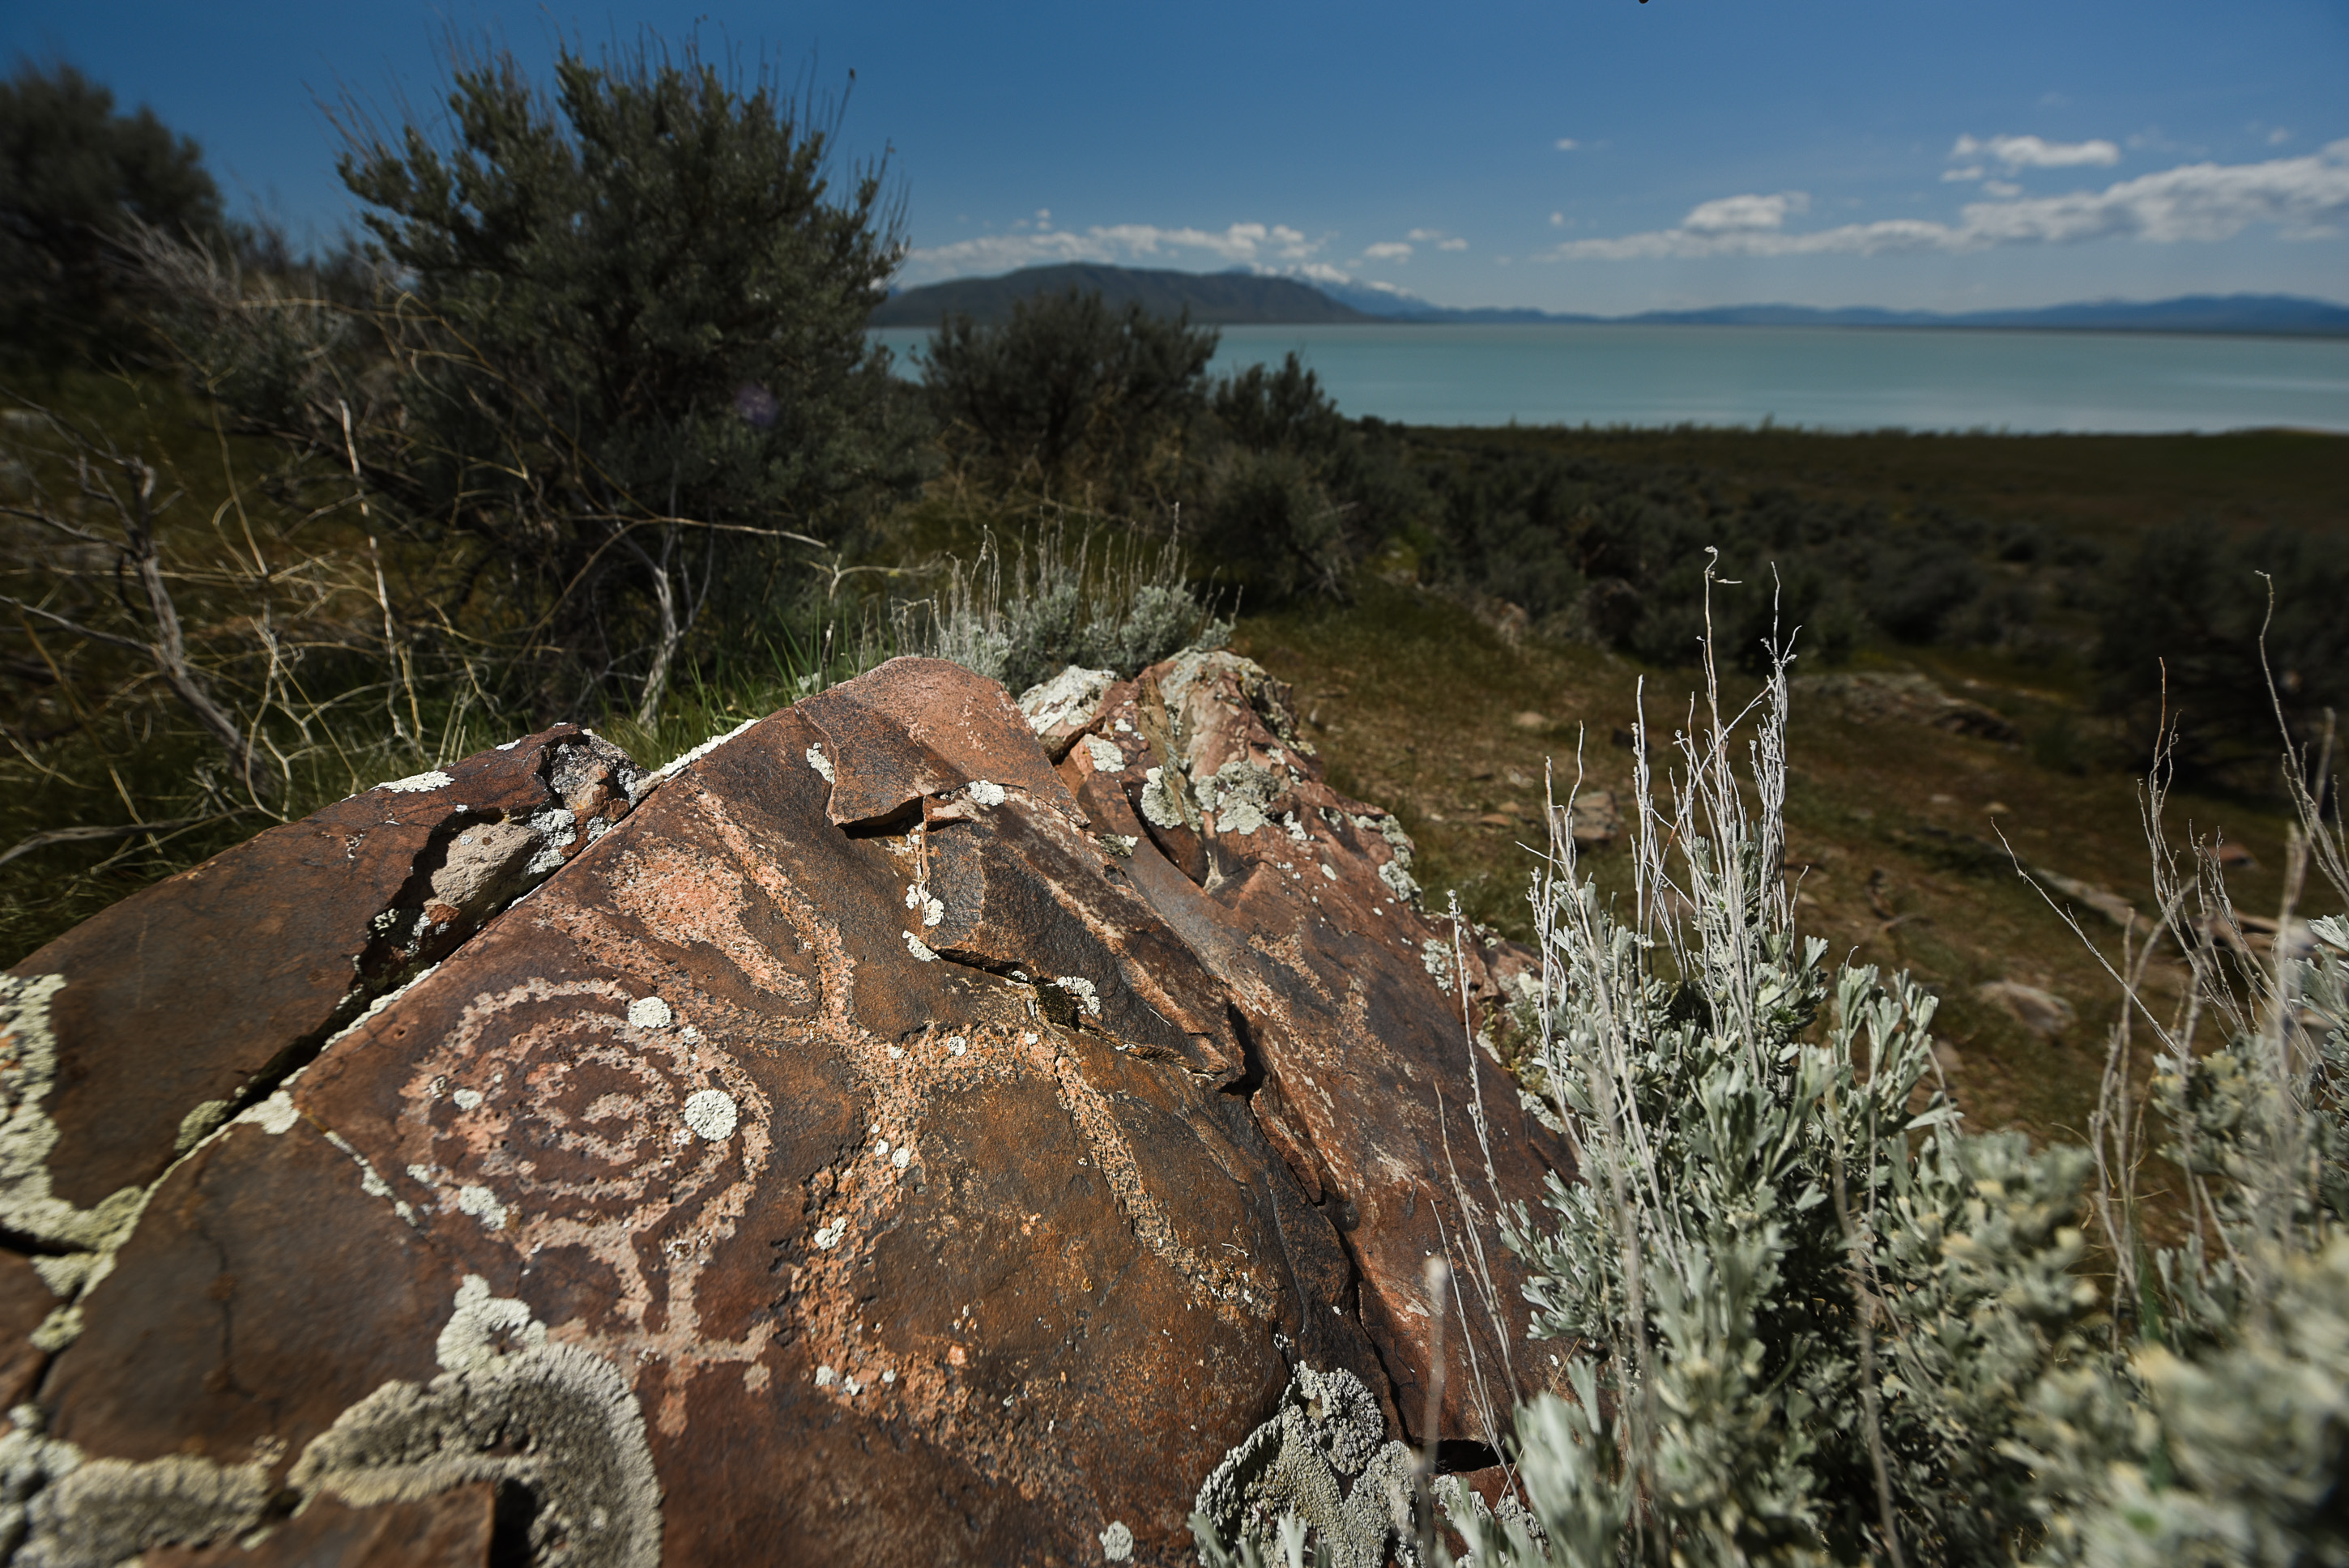 Students work to document rock art at a preserve near Utah Lake to help it win national recognition even as new threats emerge